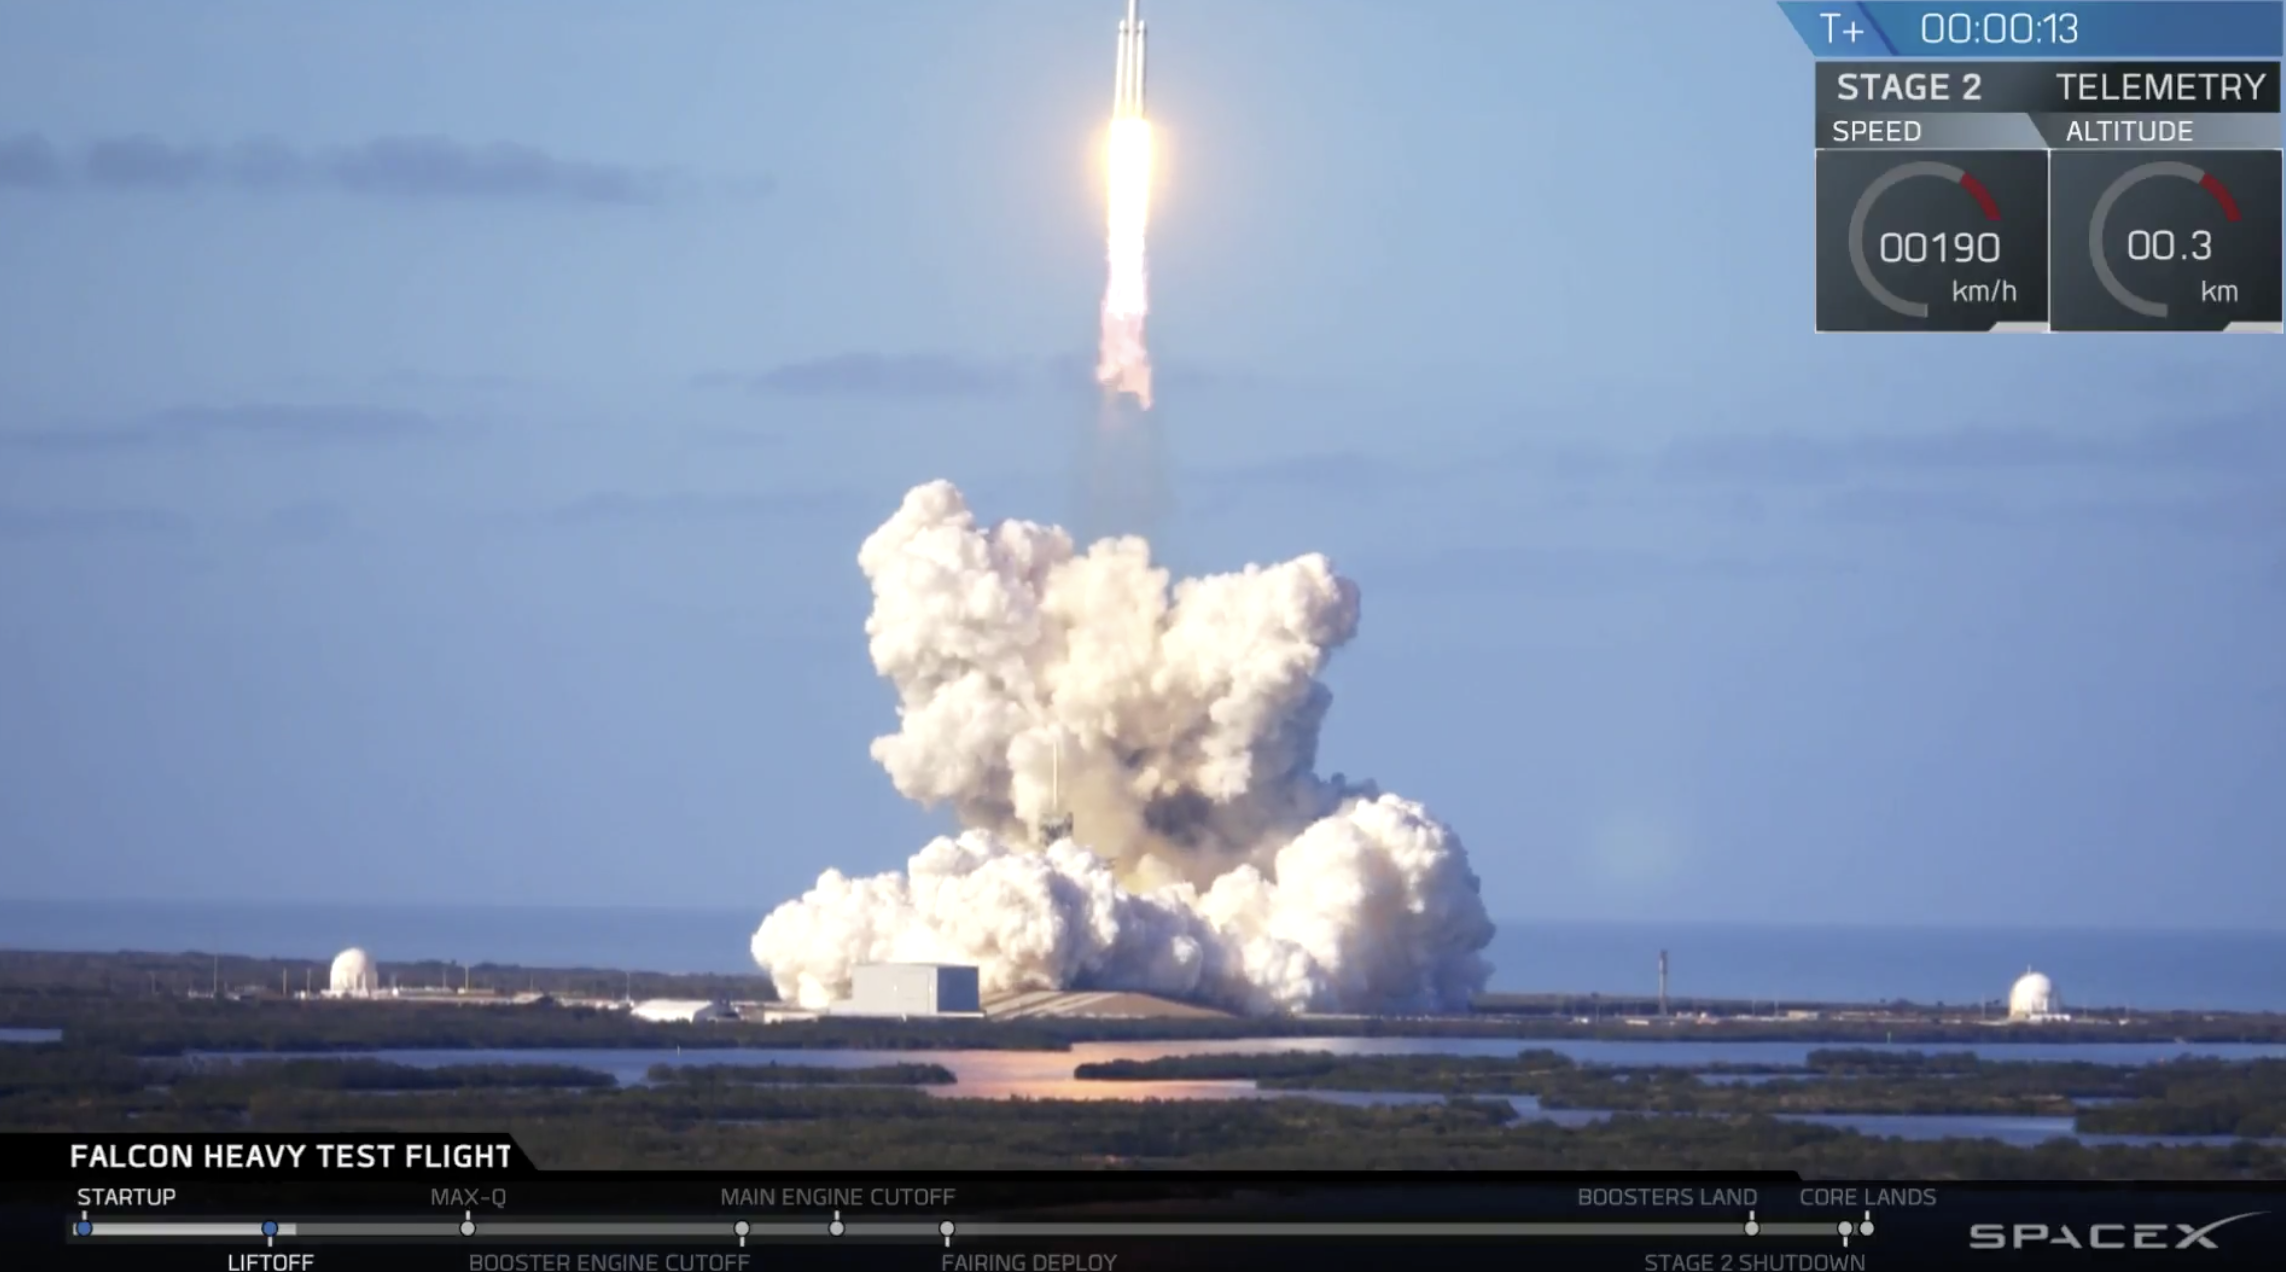 Falcon Heavy Now Officially The Most Powerful Rocket In The World